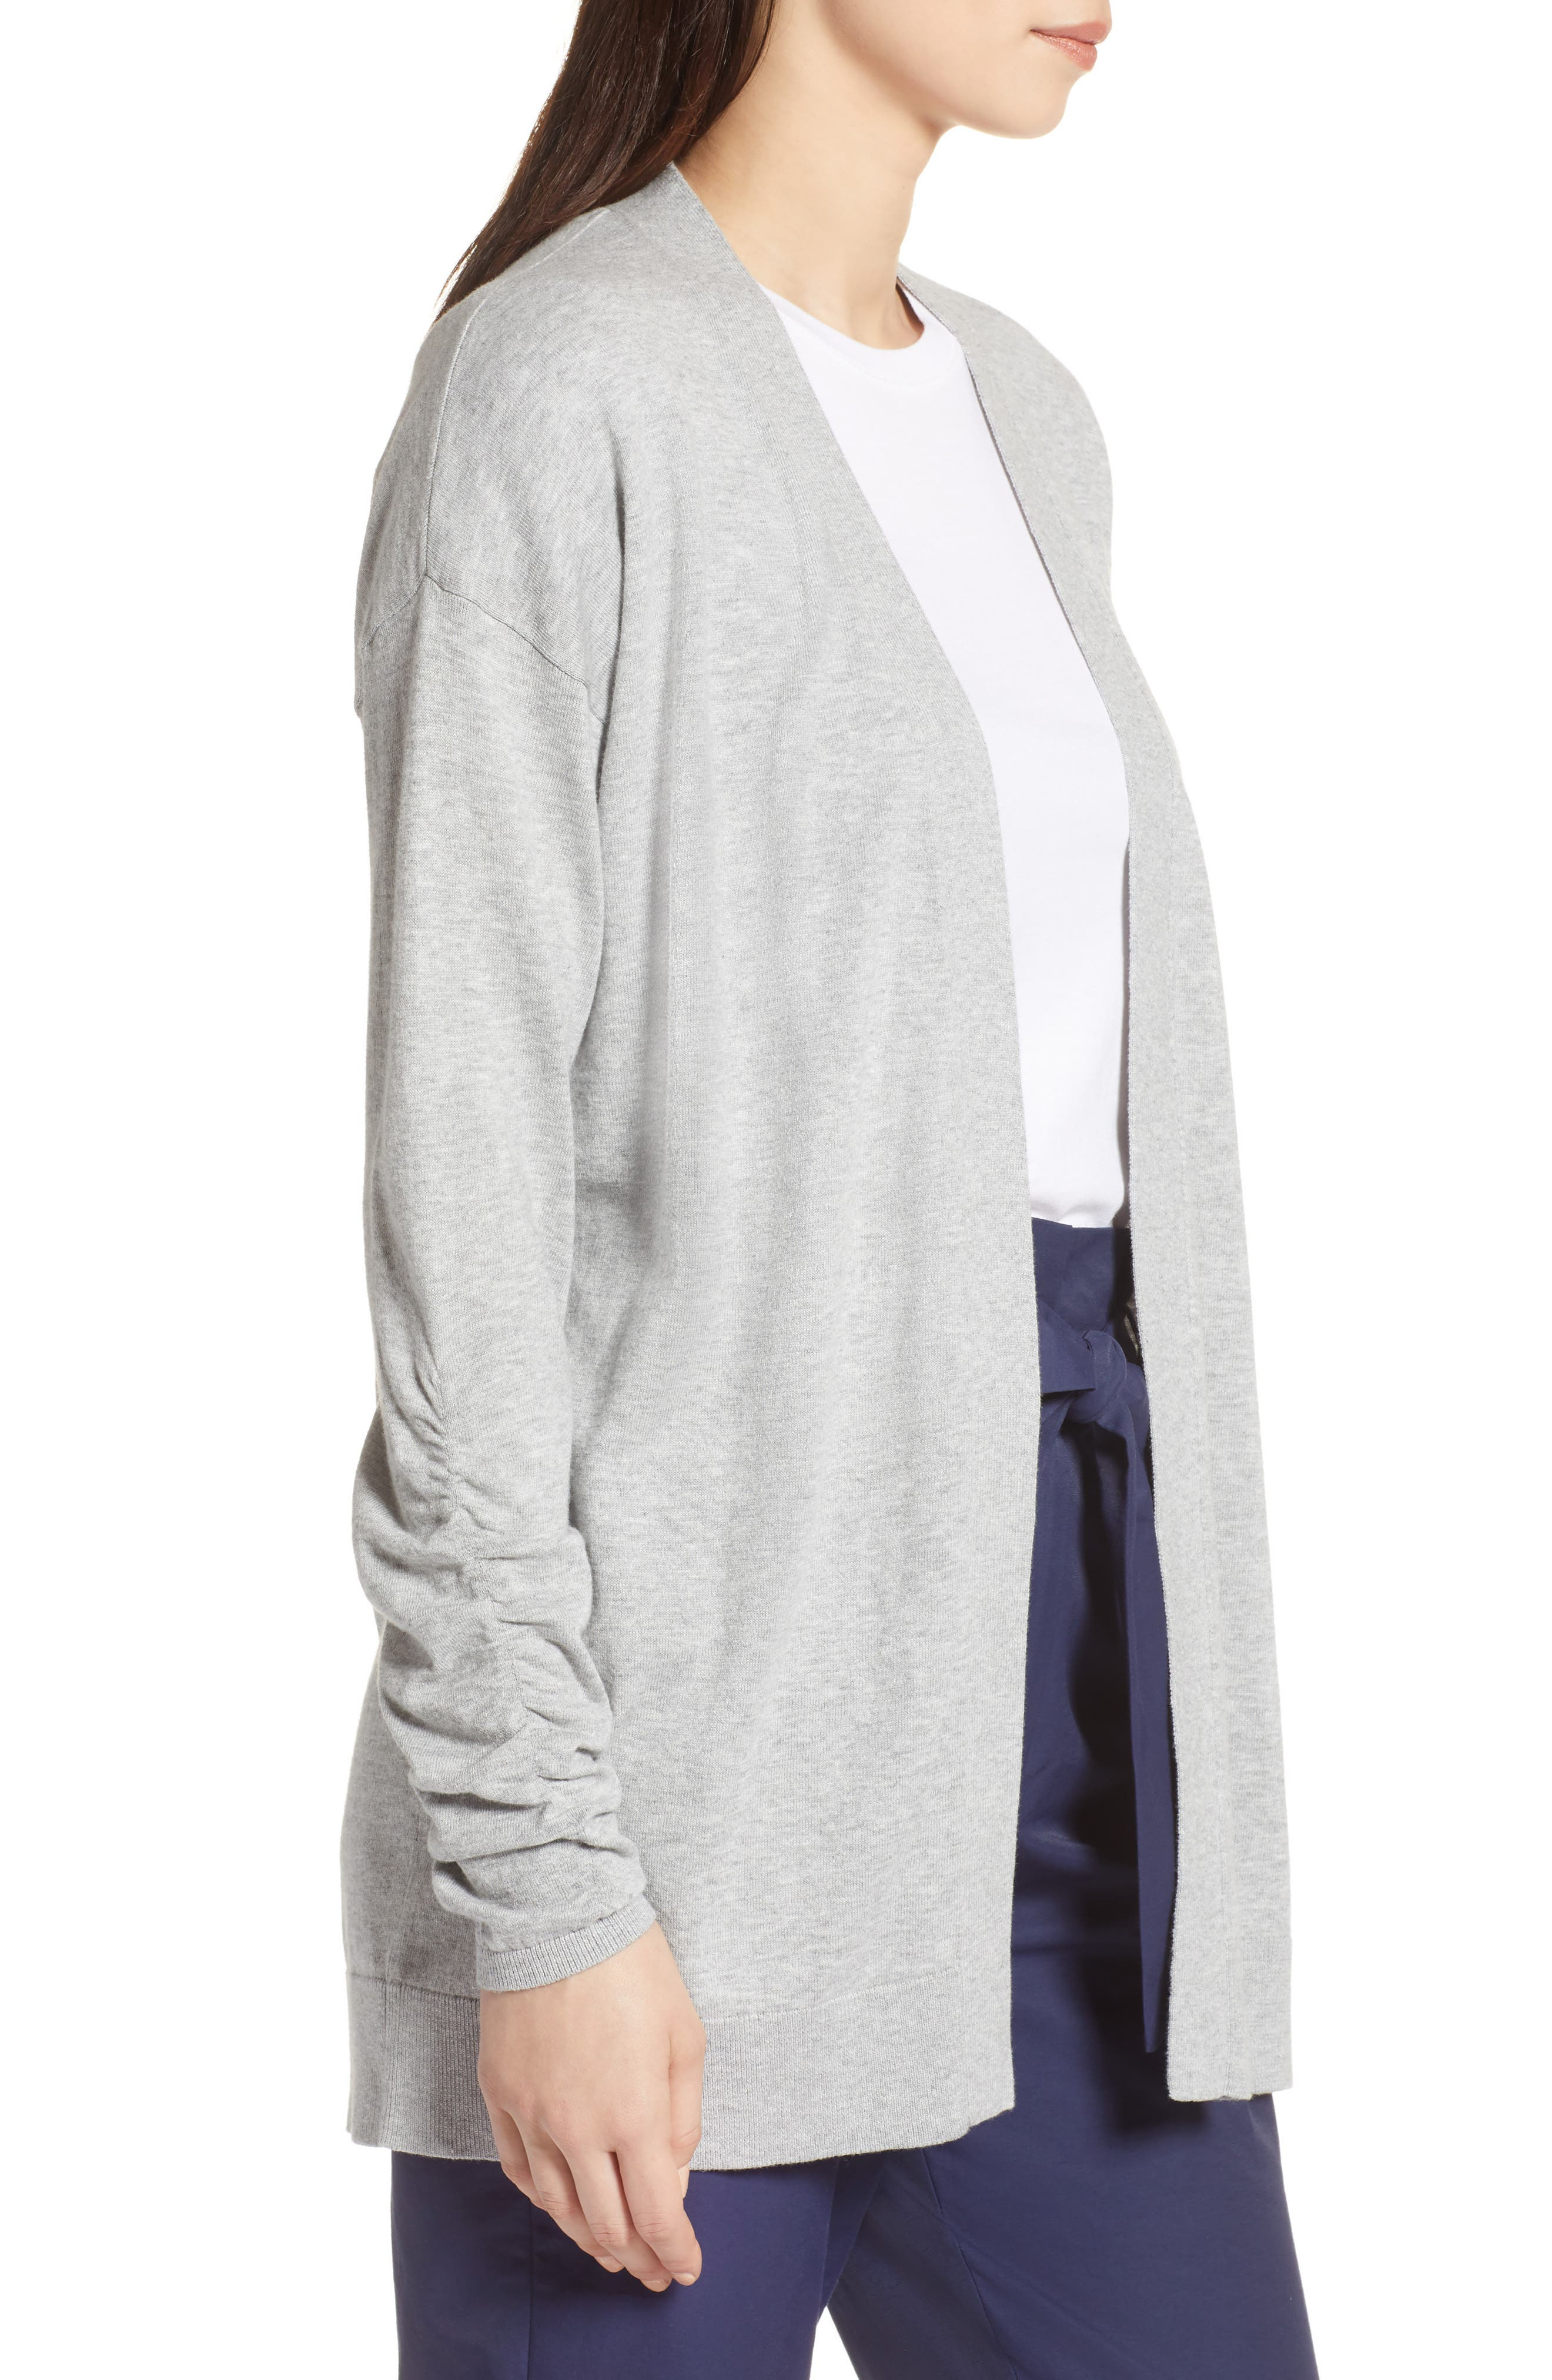 Ruched Sleeve Cardigan,                             Alternate thumbnail 3, color,                             Grey Heather